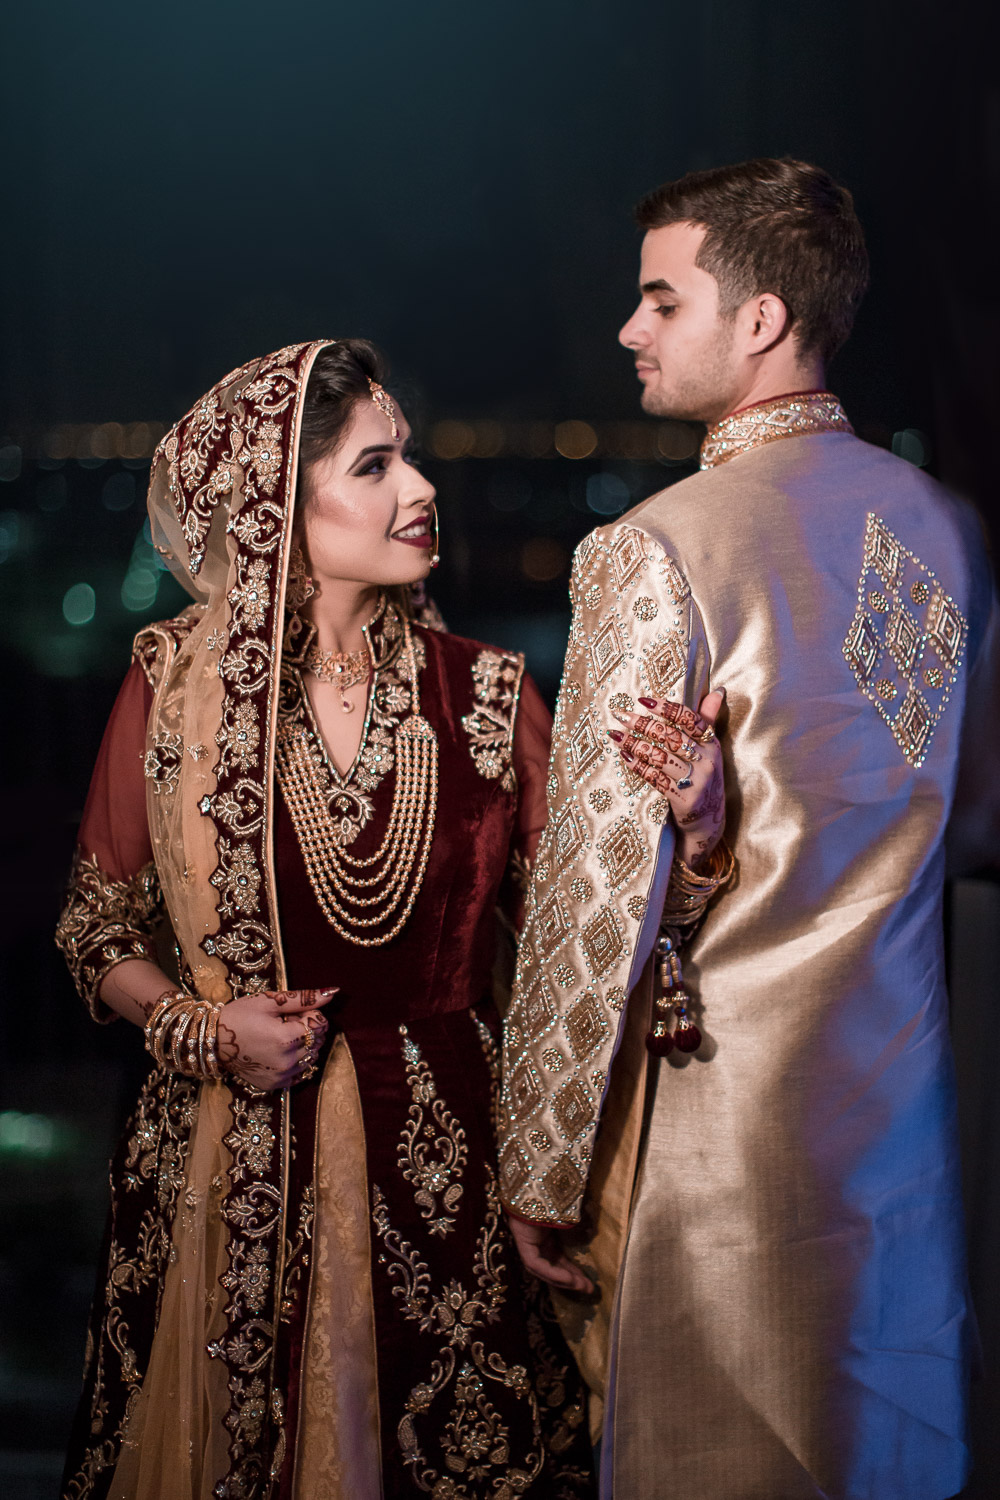 orlando eye wedding photos pakistani